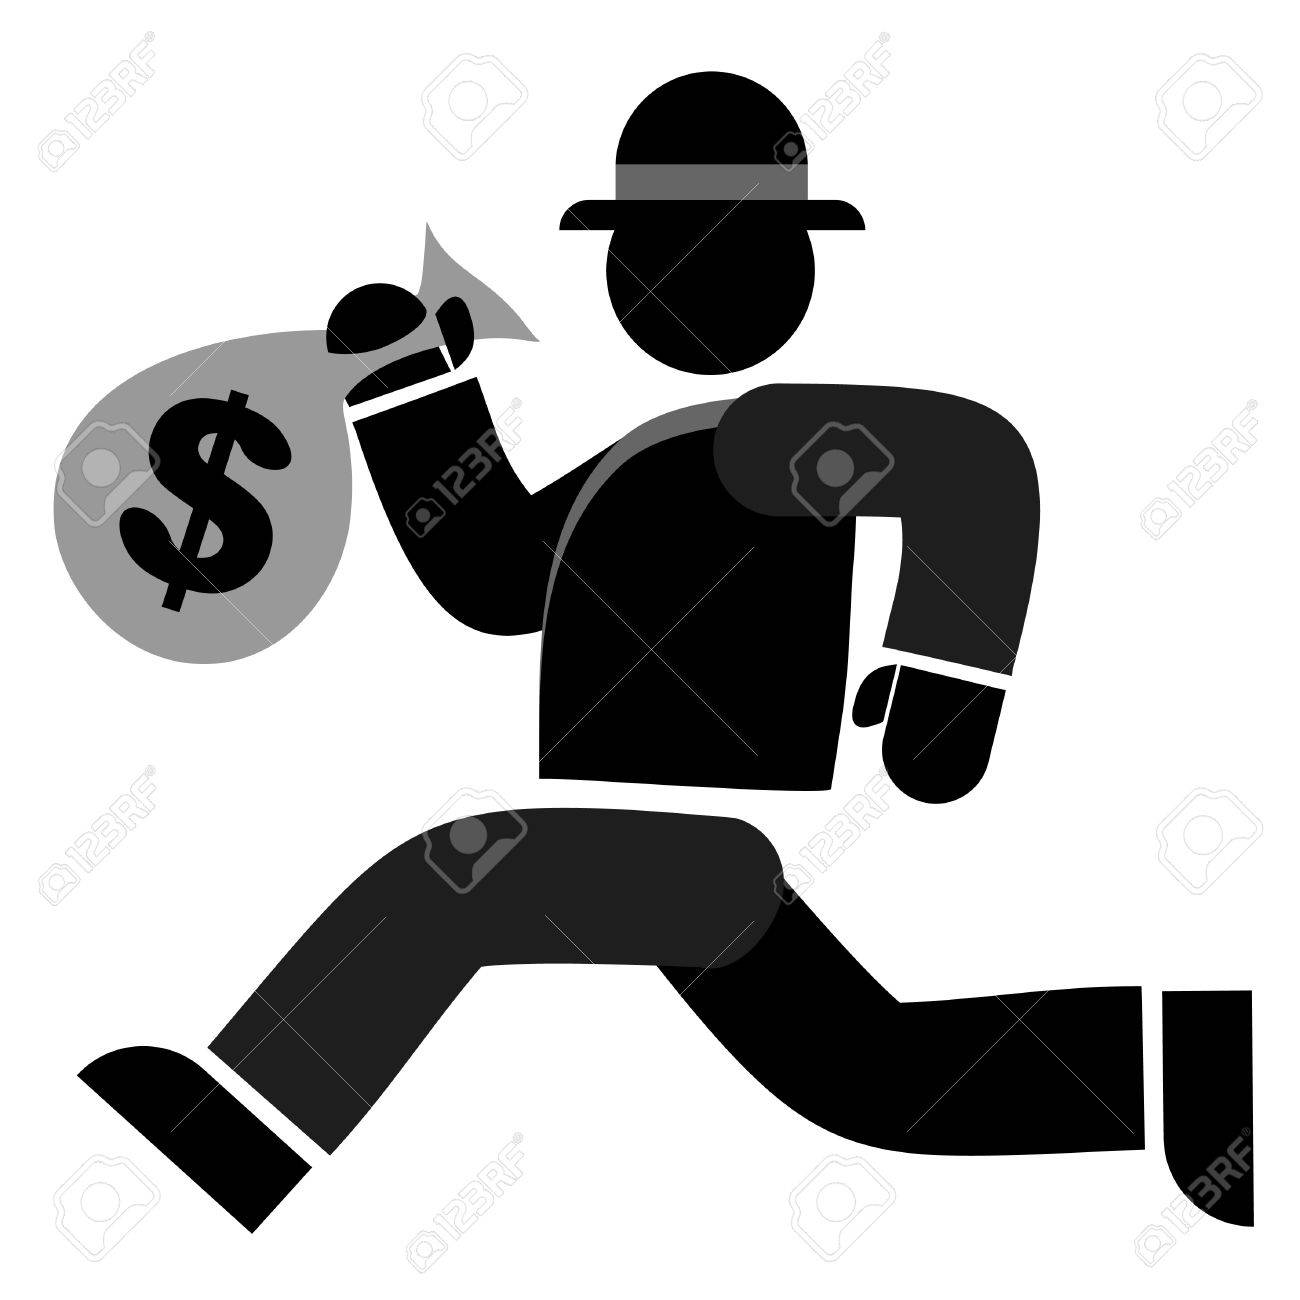 Thief Running With Money Running With a Bag of Money